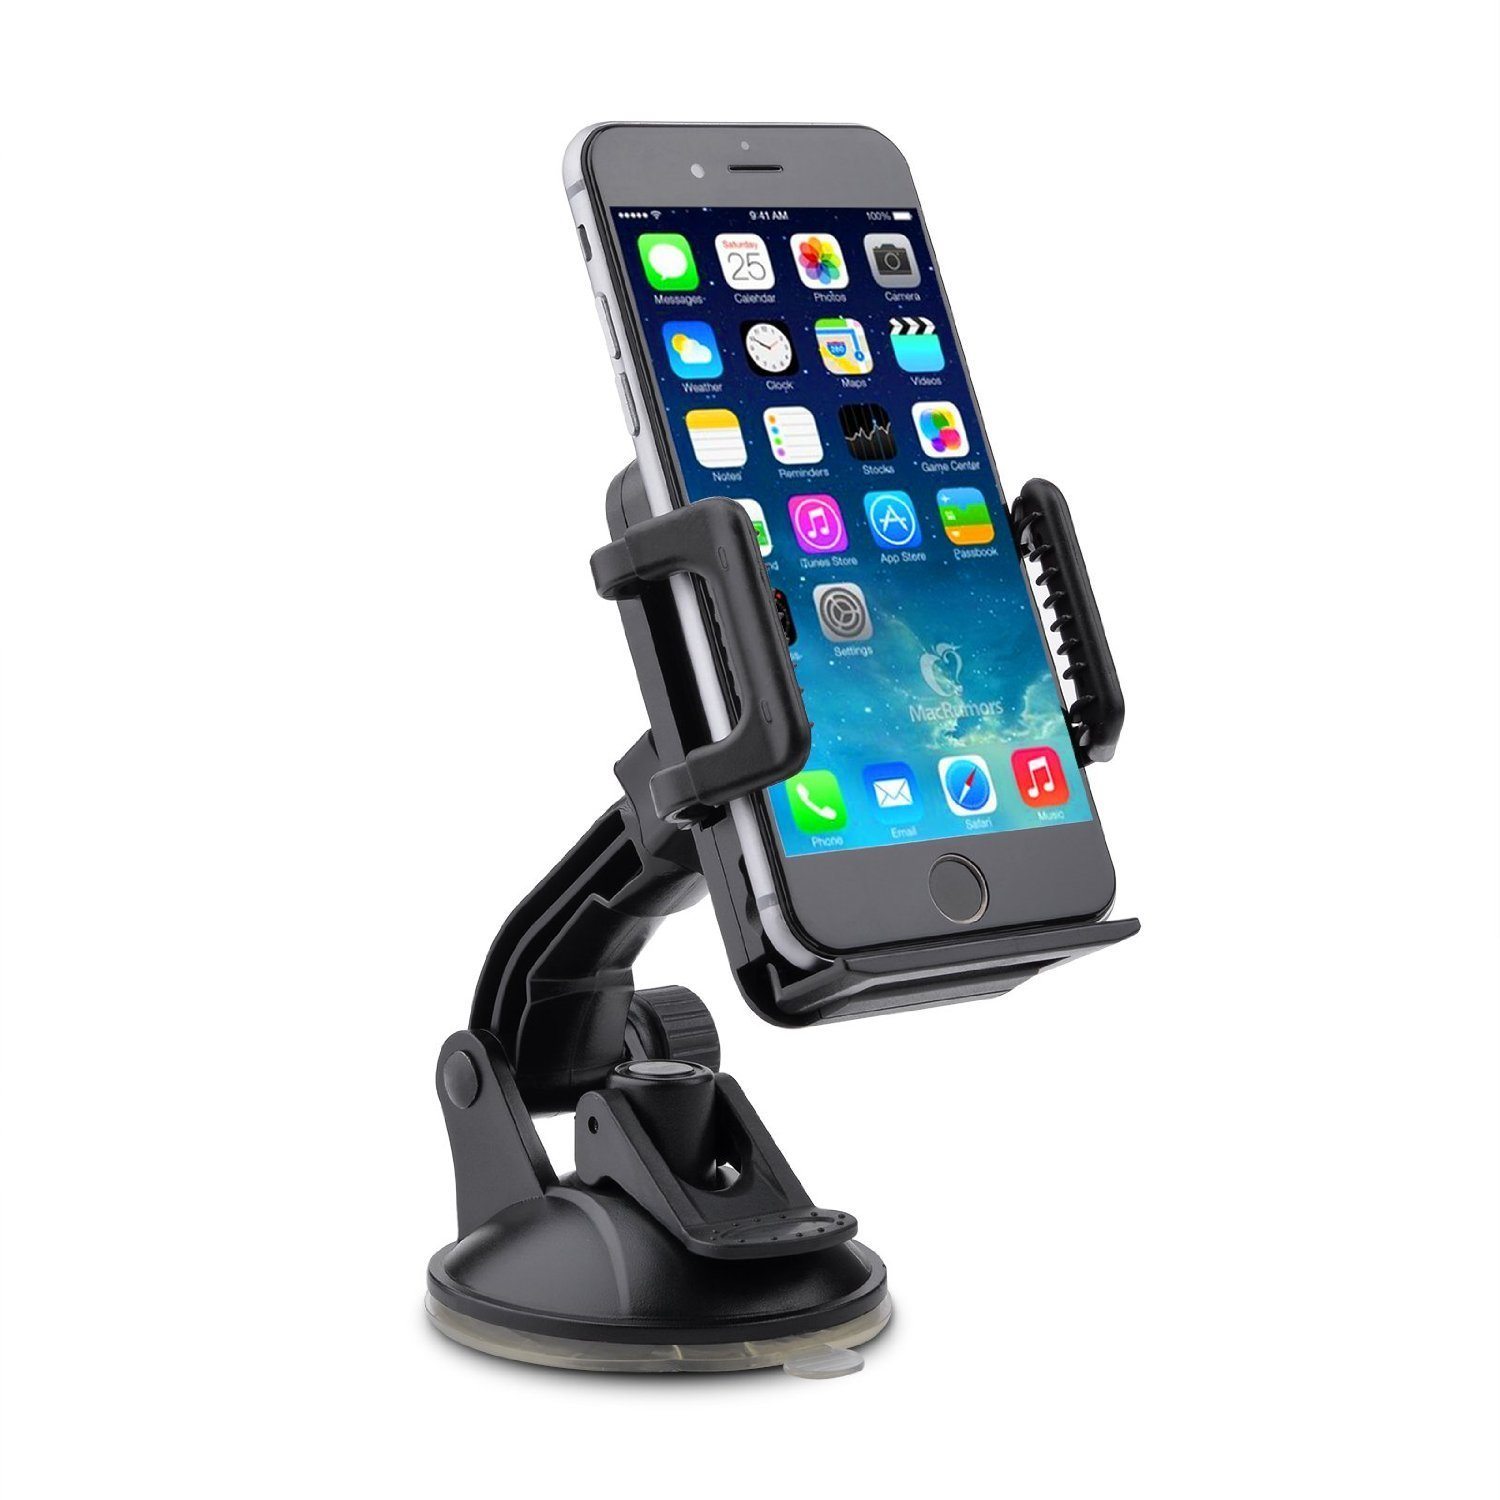 Amuoc Car Windshield/Dashboard Universal Smart Phone Mount Holder, Car Cradle for iPhone/Android